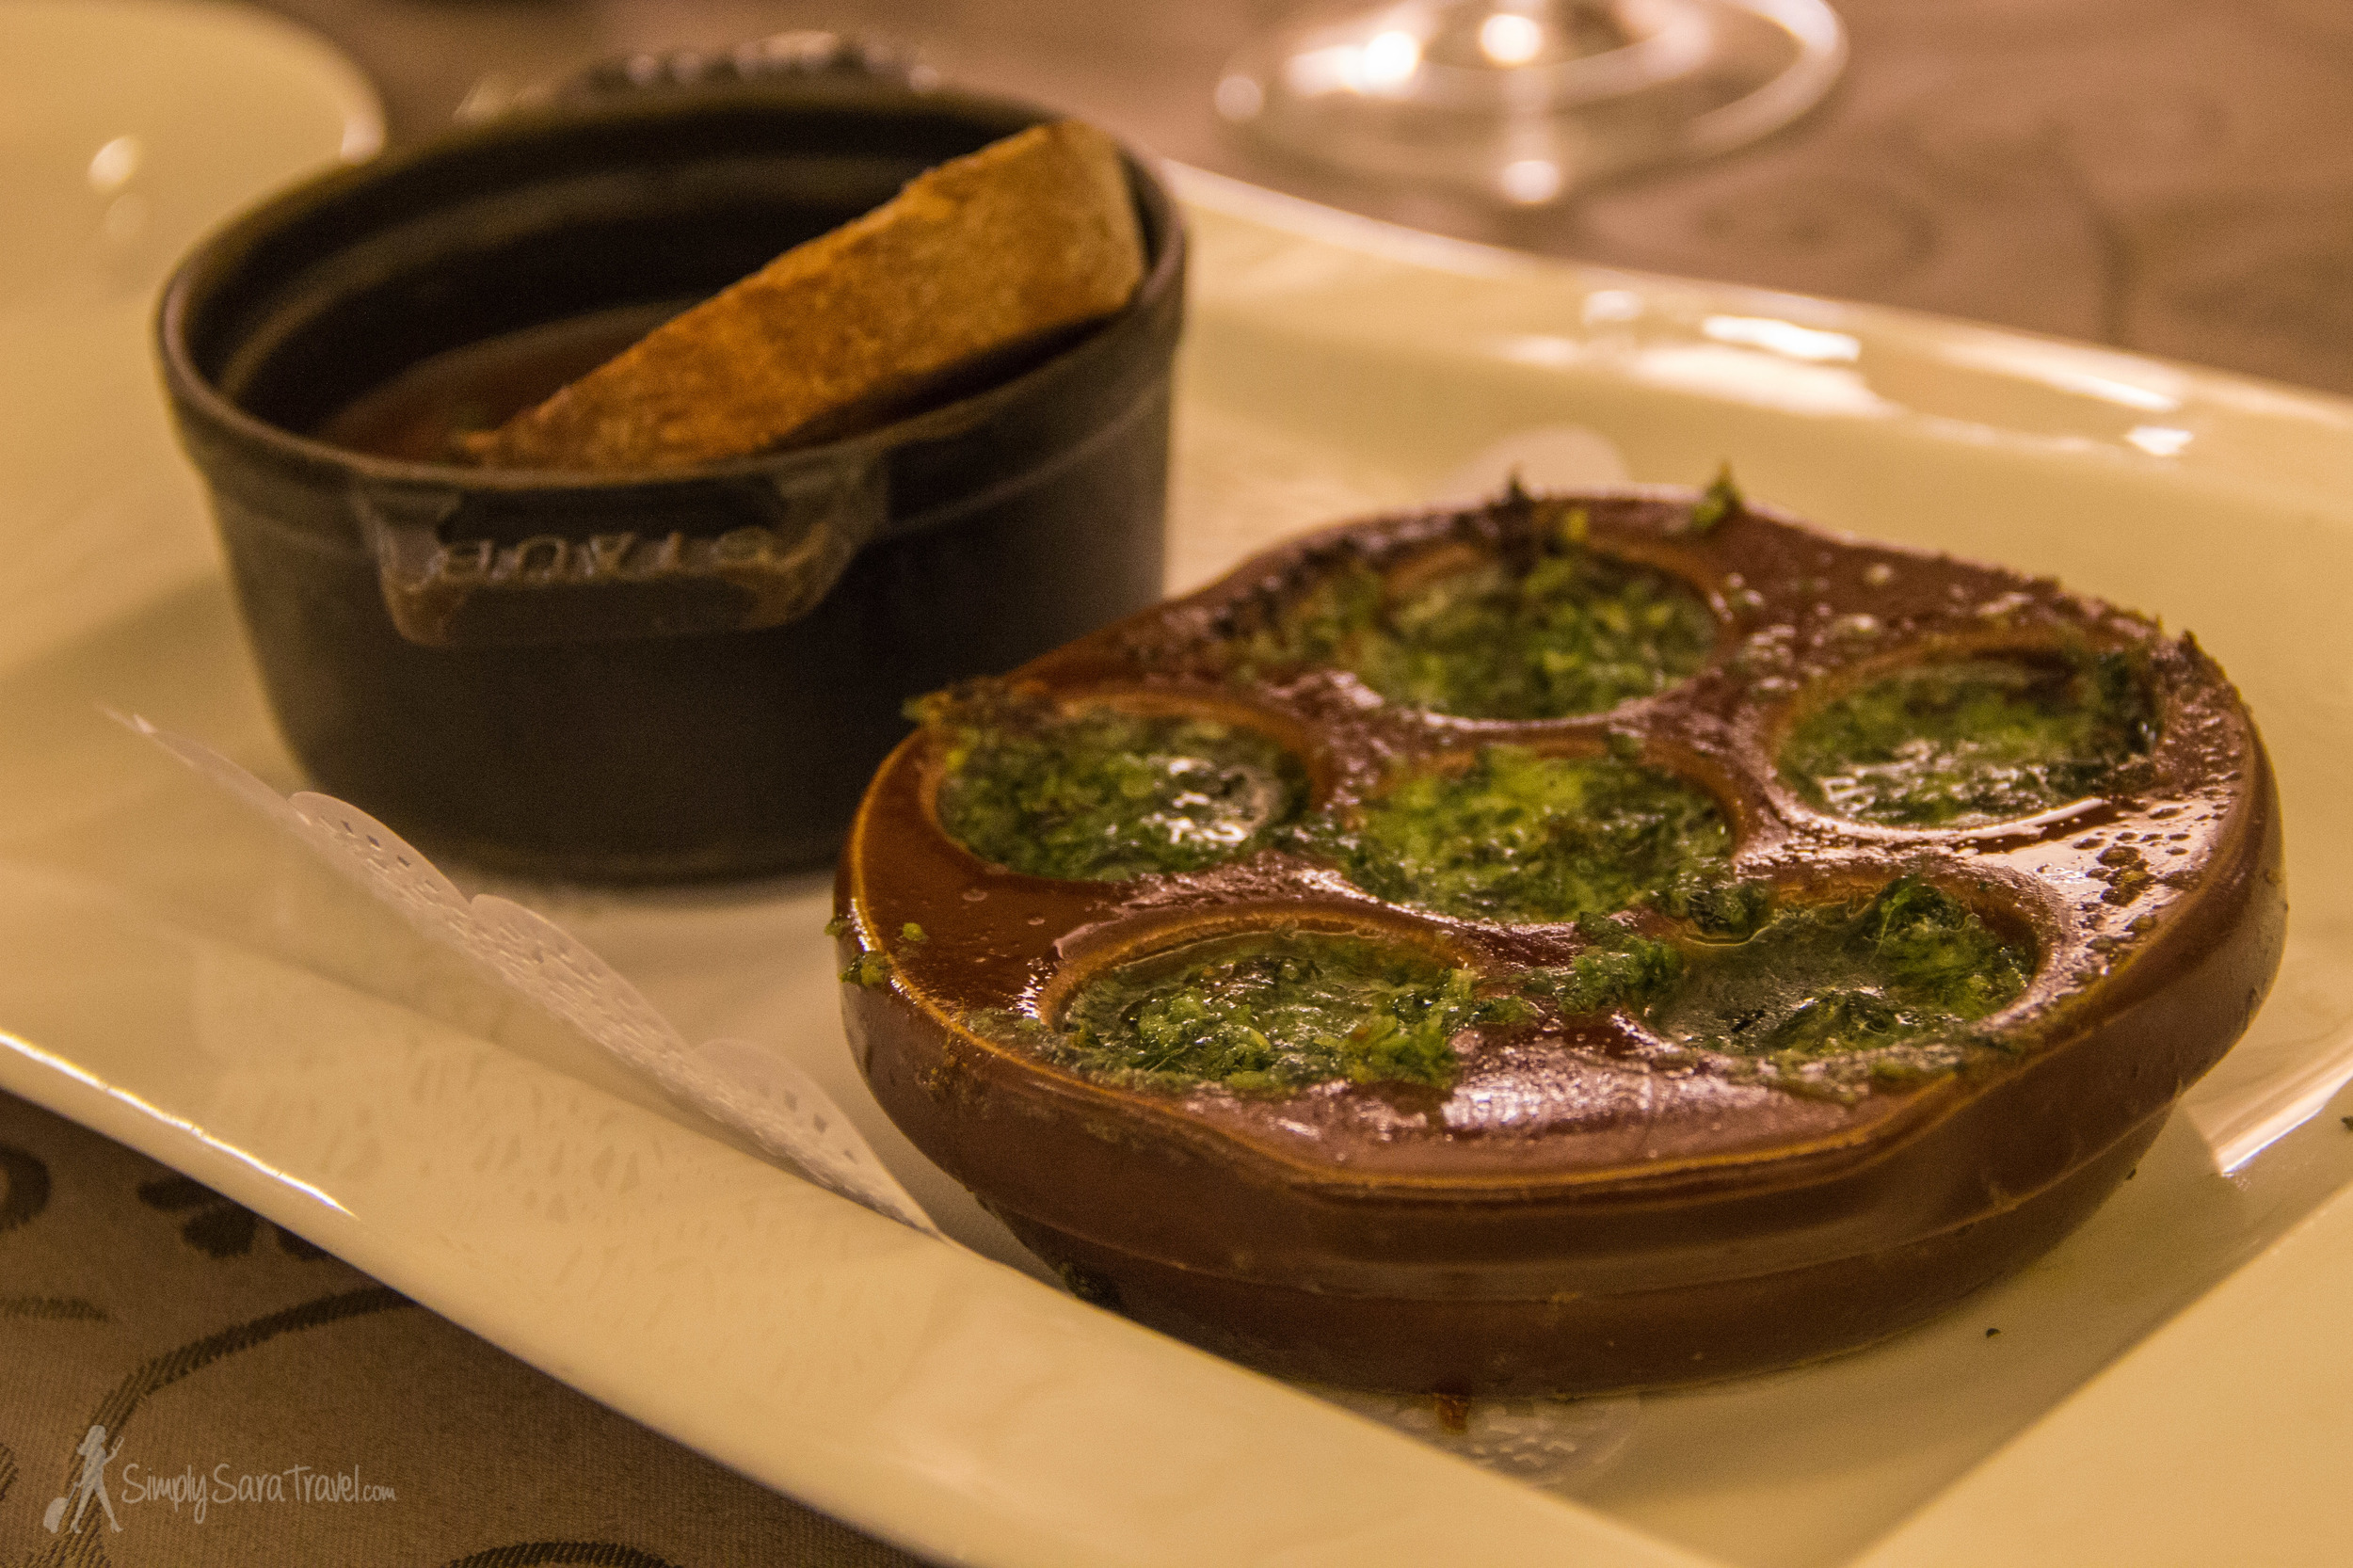 These snails might not have been the highlight of the night for our birthday guest, but that sauce they're served in is an universal crowd-pleaser! (Hint - lots of butter and garlic involved!)